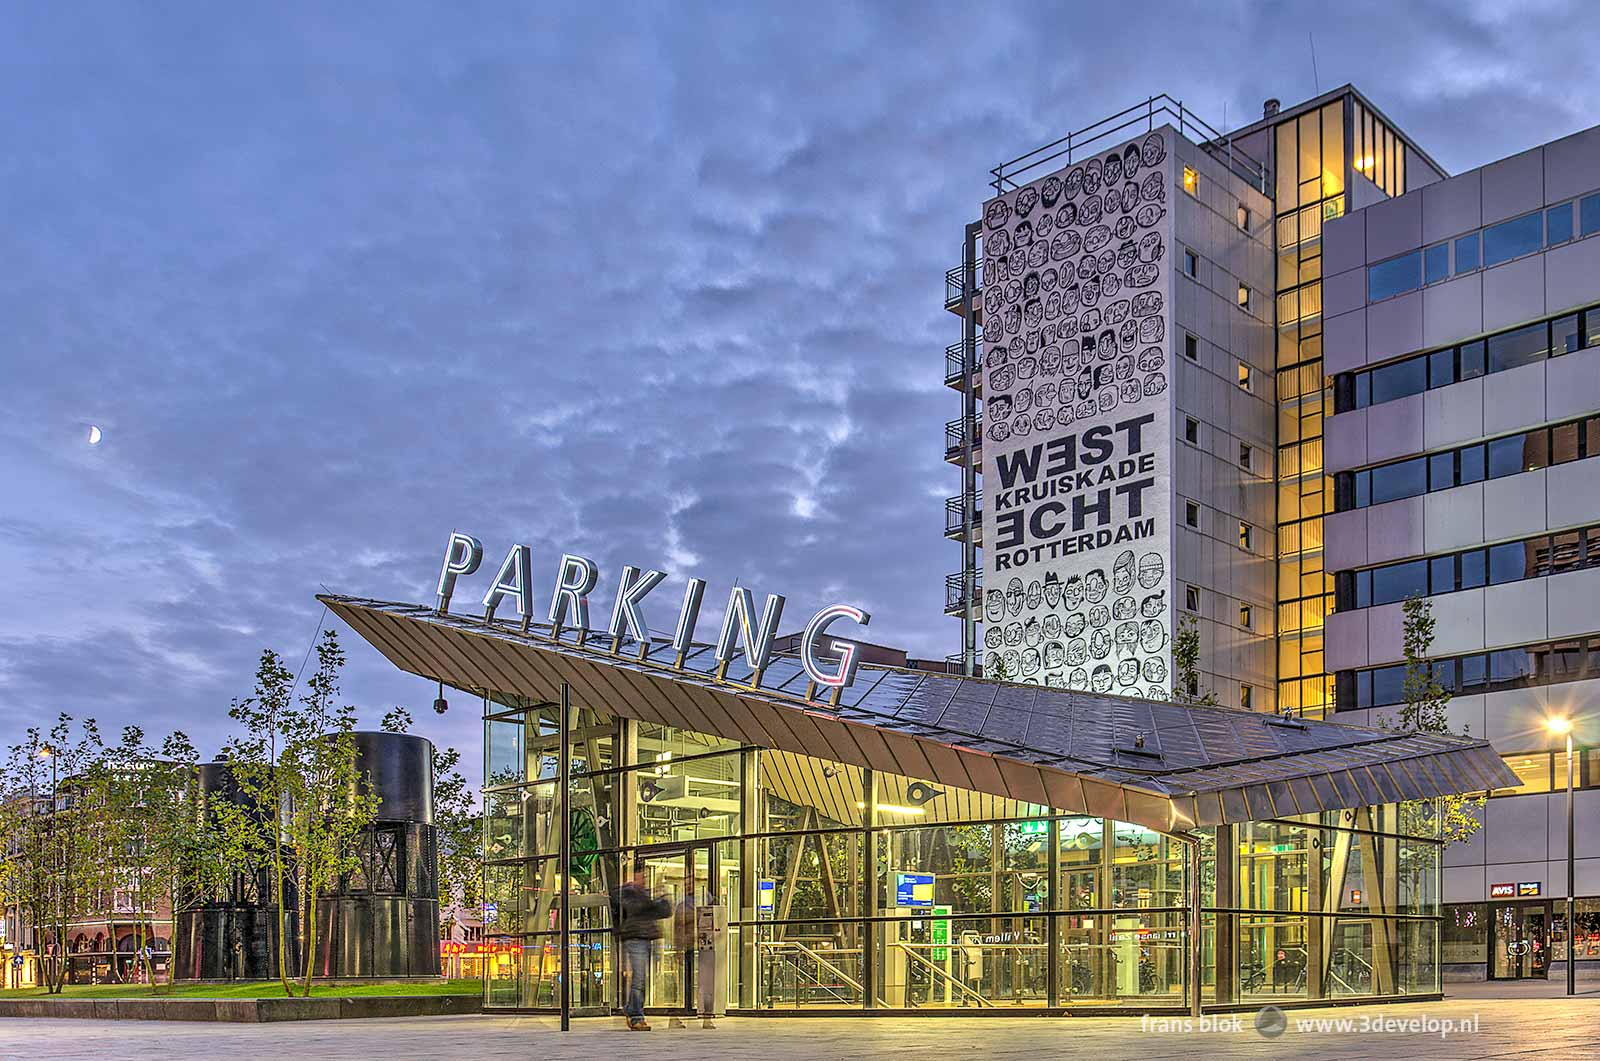 The entrance to the parking garage at the Kruisplein in Rotterdam, photographed around sunset with in the sky the Moon in its First Quarter